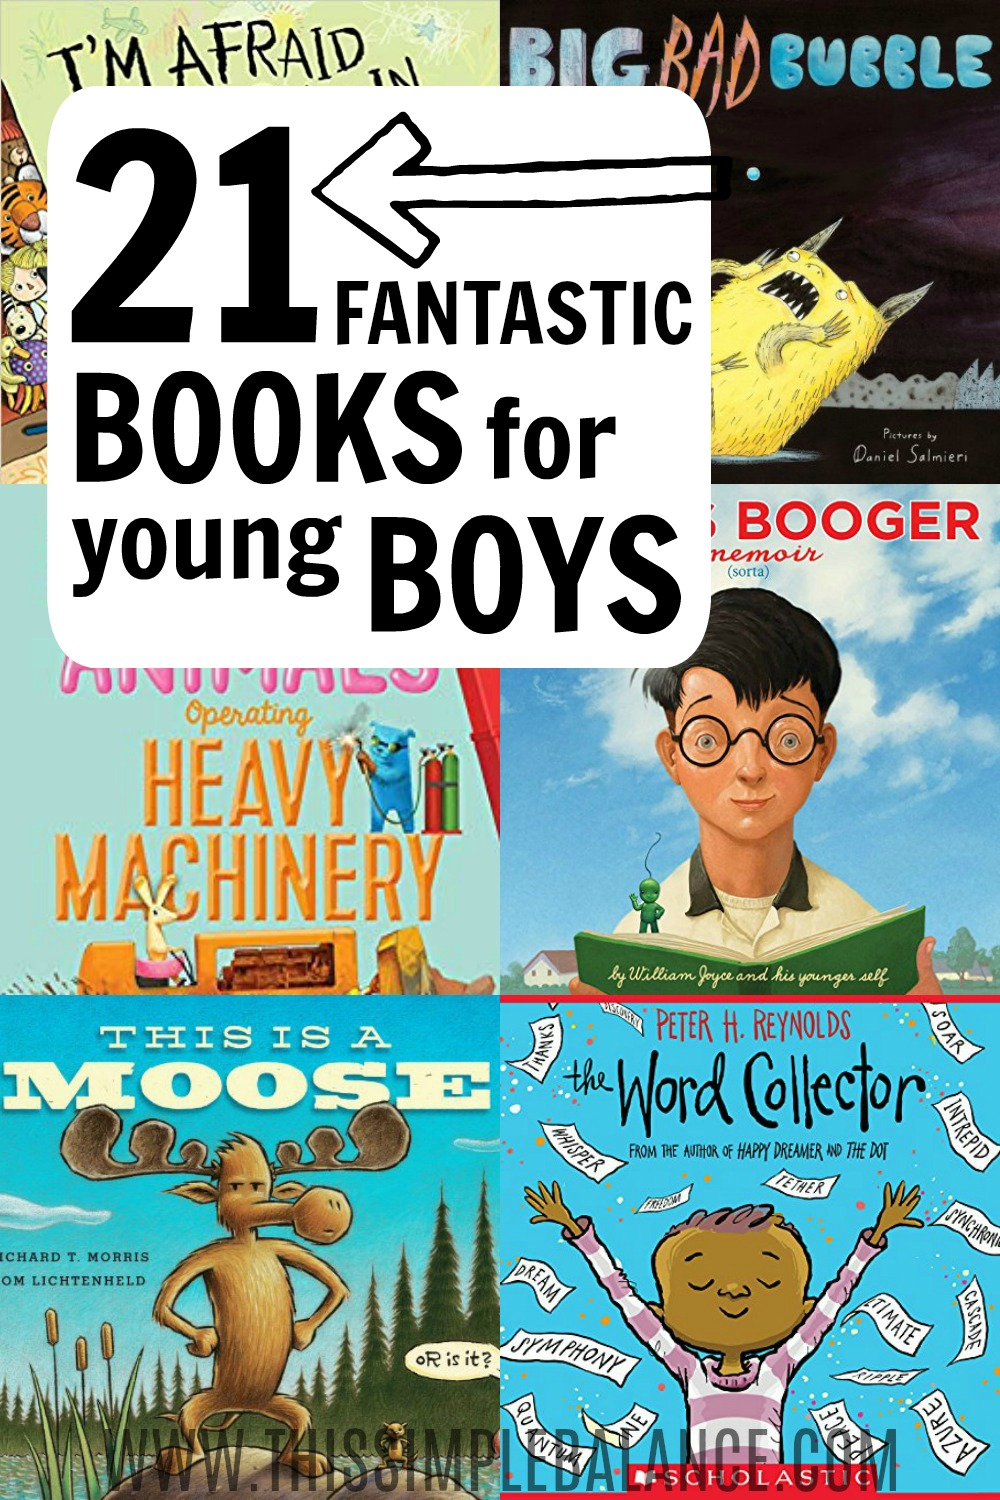 Books for boys (ages 4-6, ages 6-8): a hilarious and engaging book list perfect for young boys (though all kids - boys and girls - will probably enjoy them!)